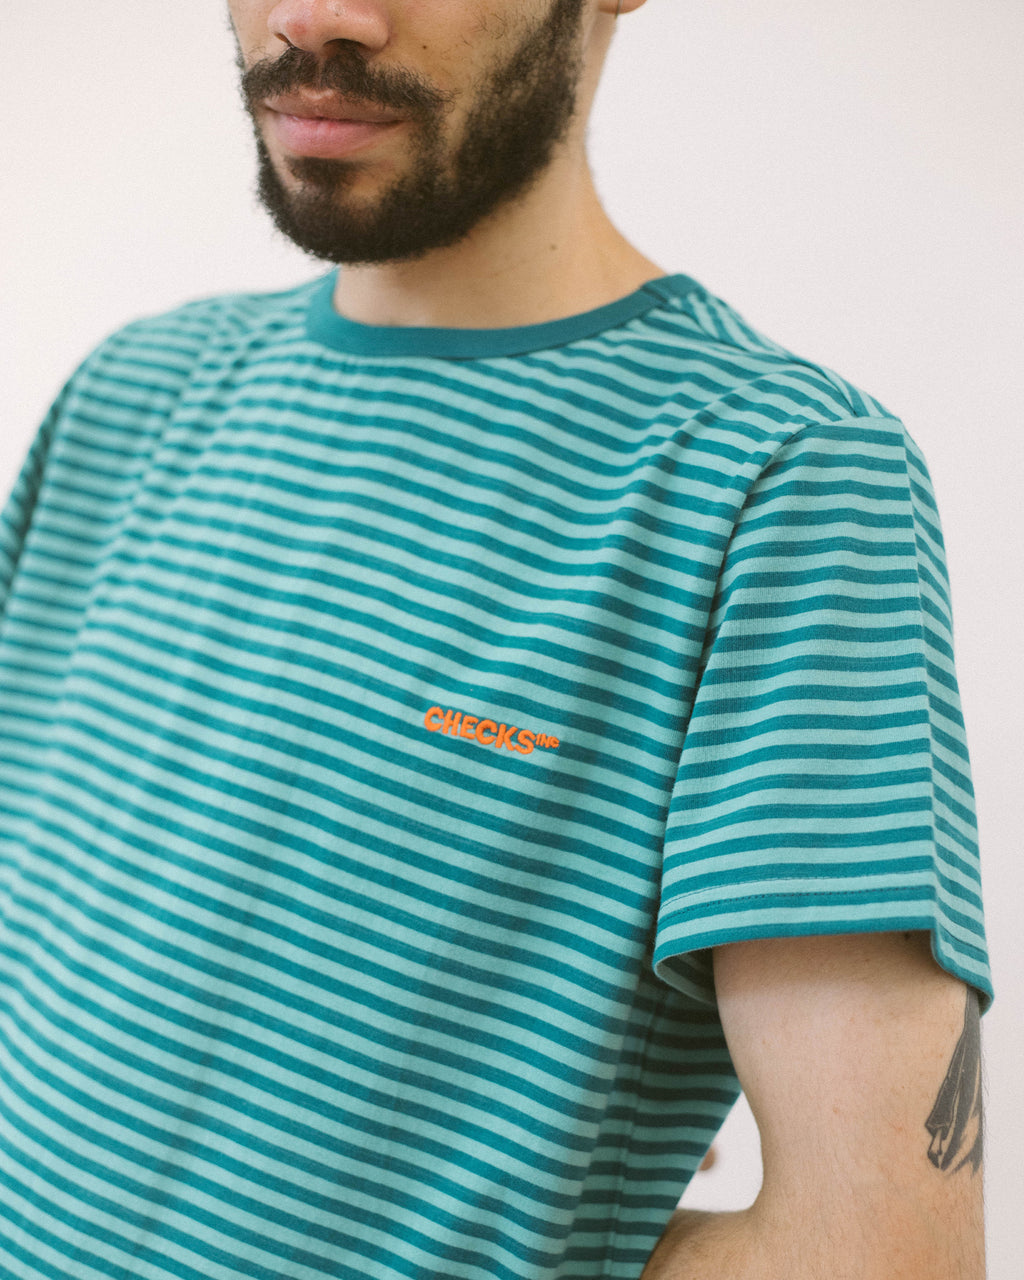 Micro Stripe T-shirt Teal | CHECKS DOWNTOWN